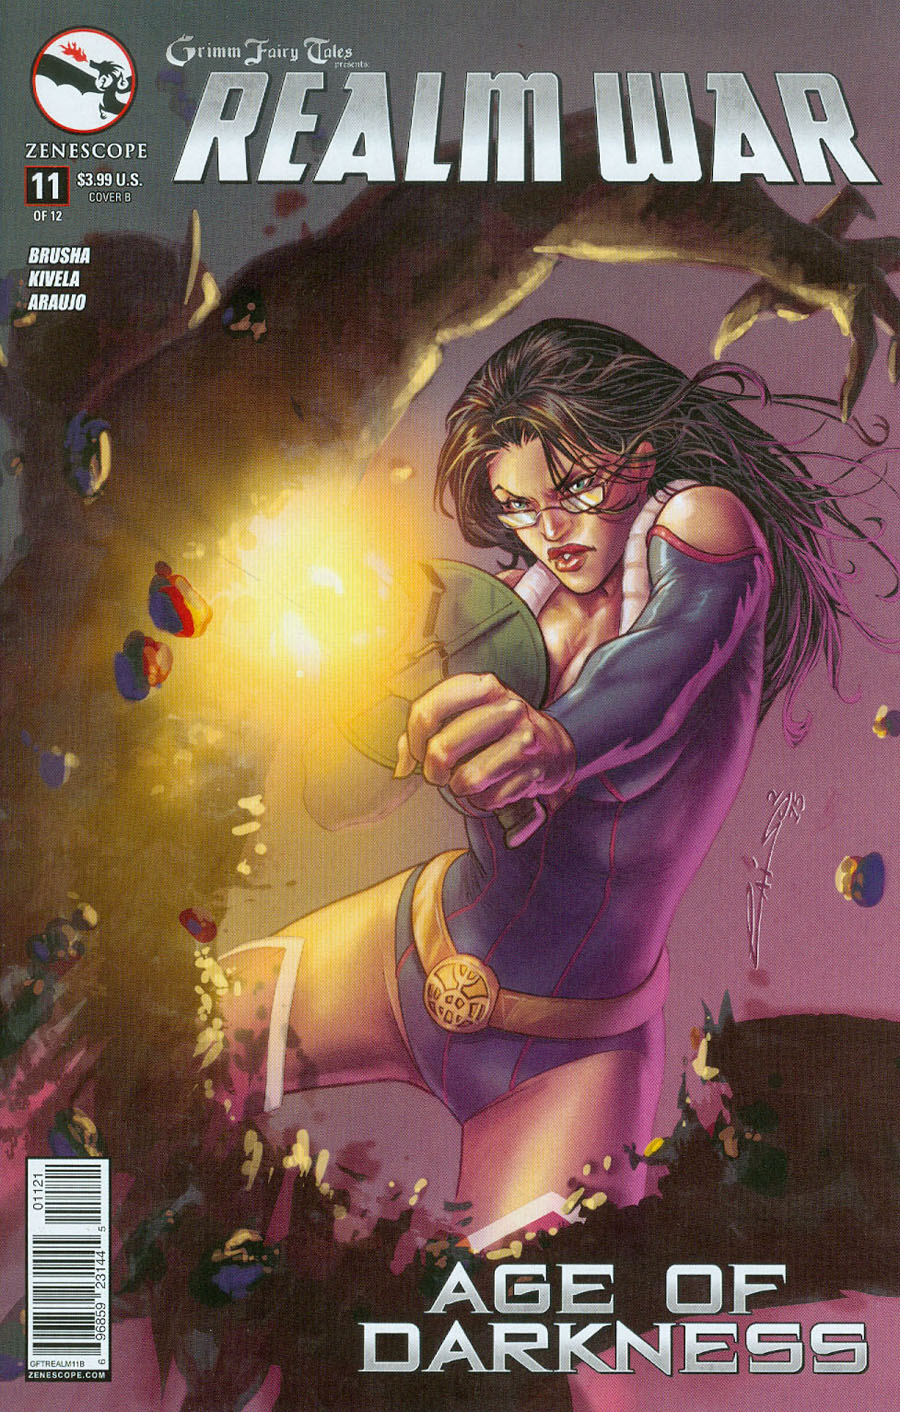 Grimm Fairy Tales Presents Realm War #11 Cover B Emilio Laiso (Age Of Darkness Tie-In)